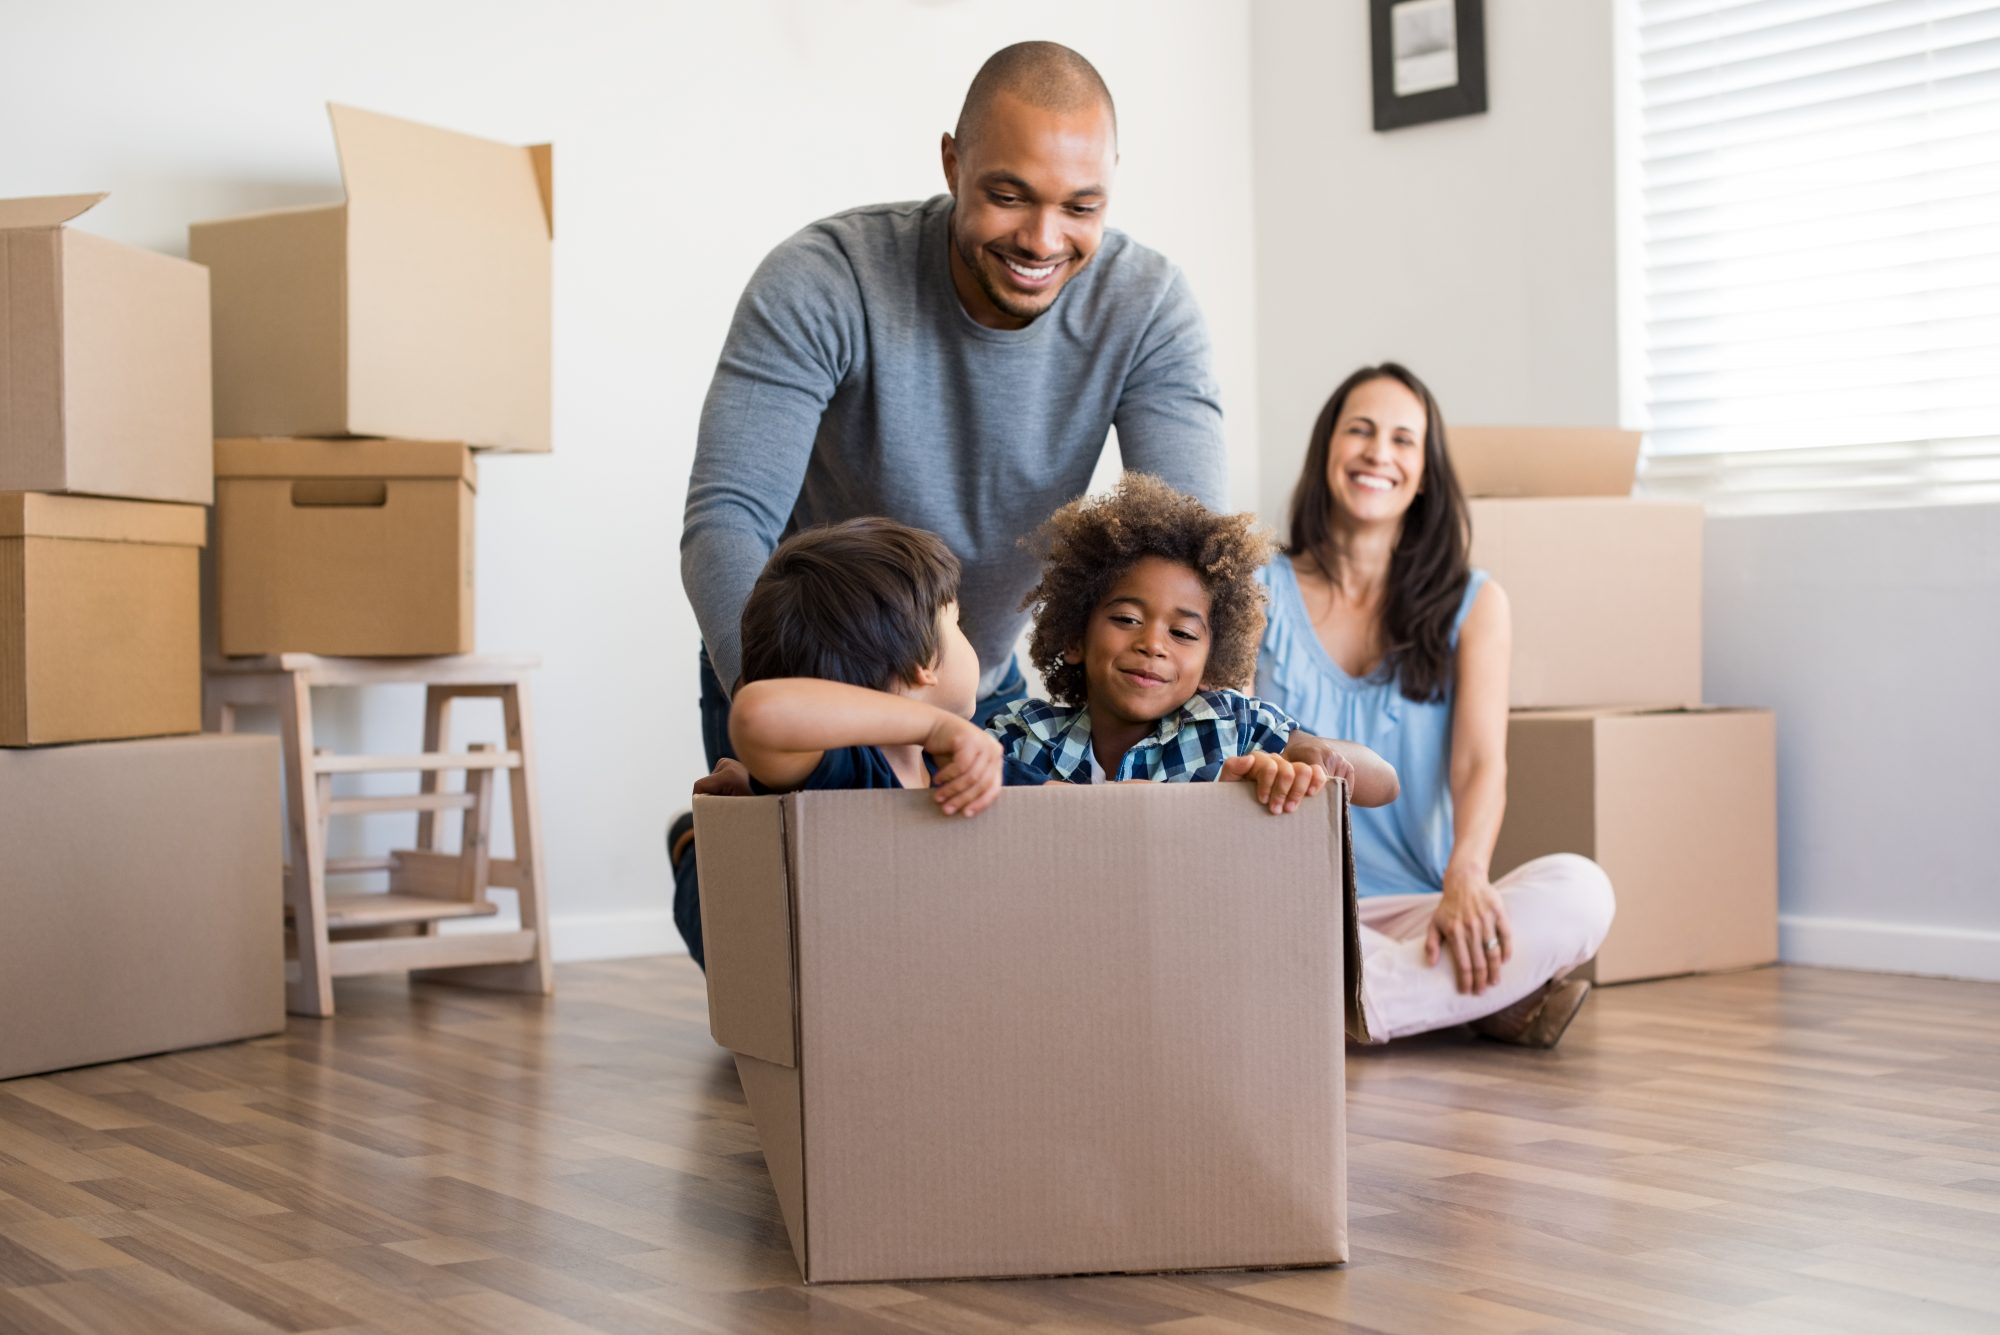 Man pushing two kids in an empty box in the living room while mom watches from a distance.